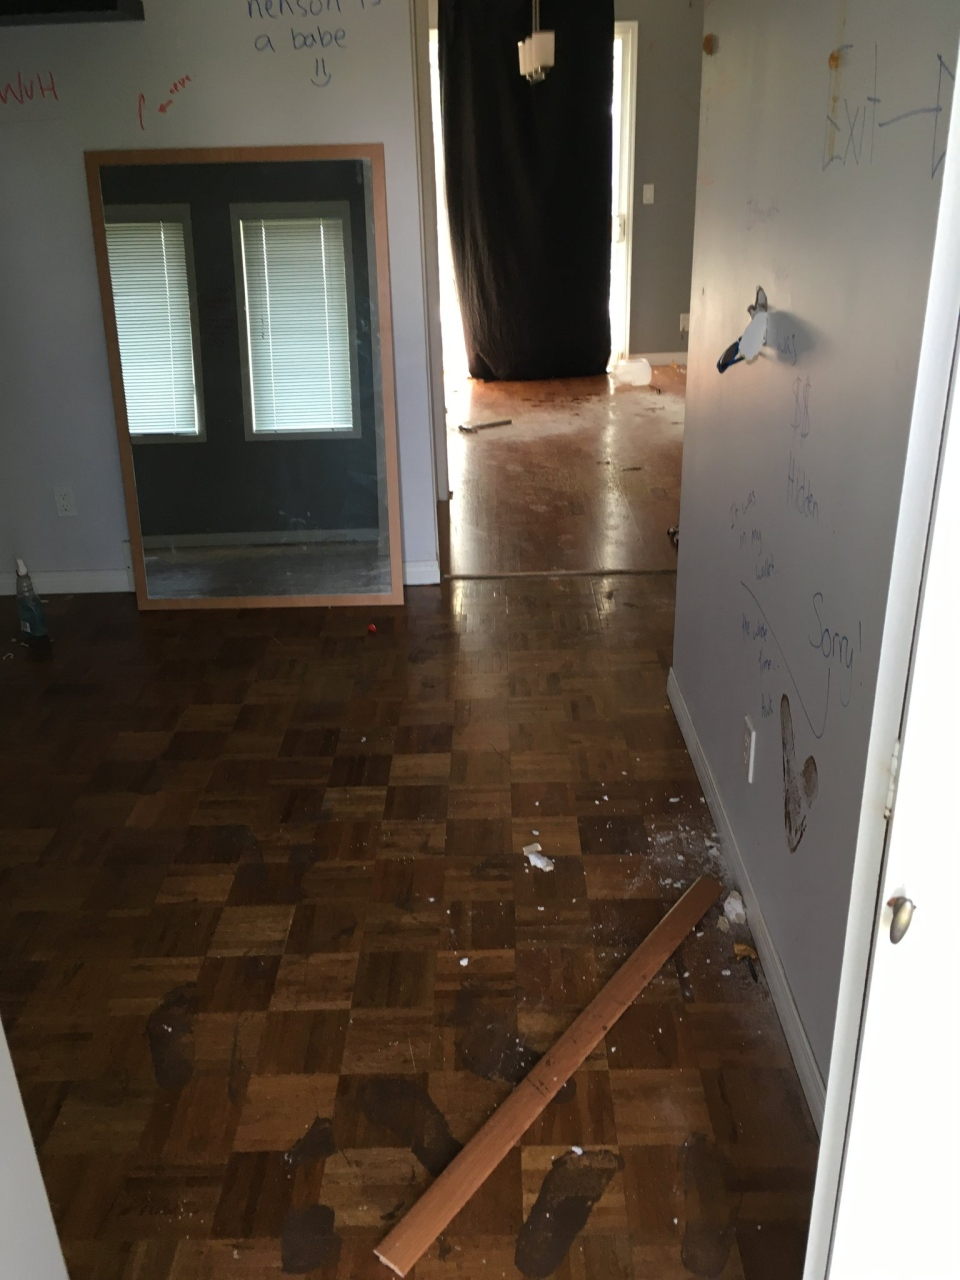 Renters recently caused $40,000 in damage to a home in Regina. (LISA NENSON/SUBMITTED PHOTO)